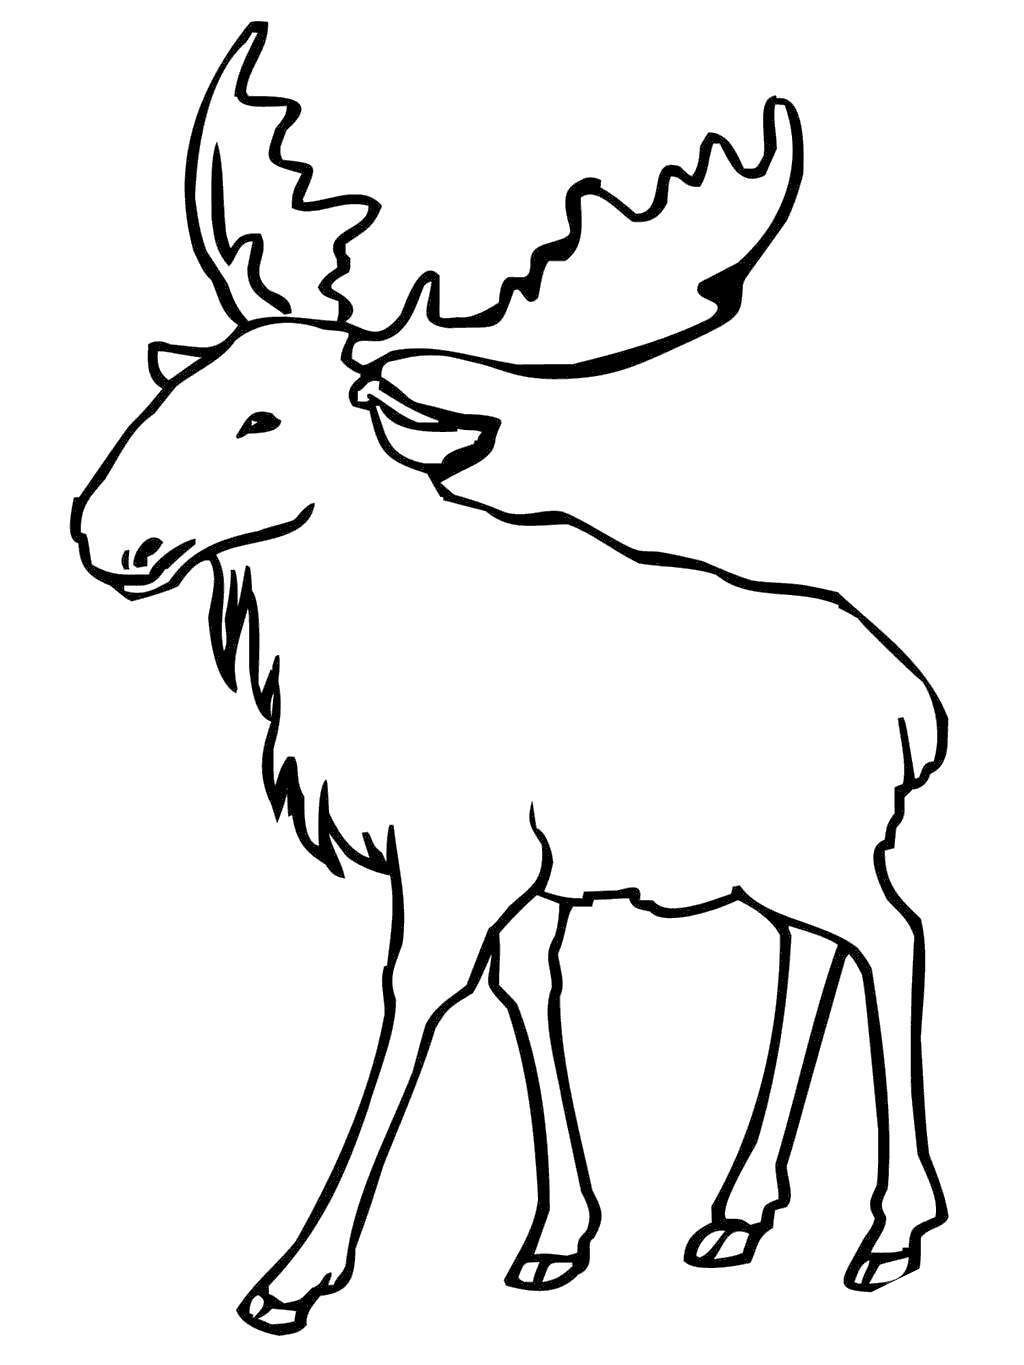 moose coloring pages printable moose coloring pages for kids cool2bkids coloring pages moose